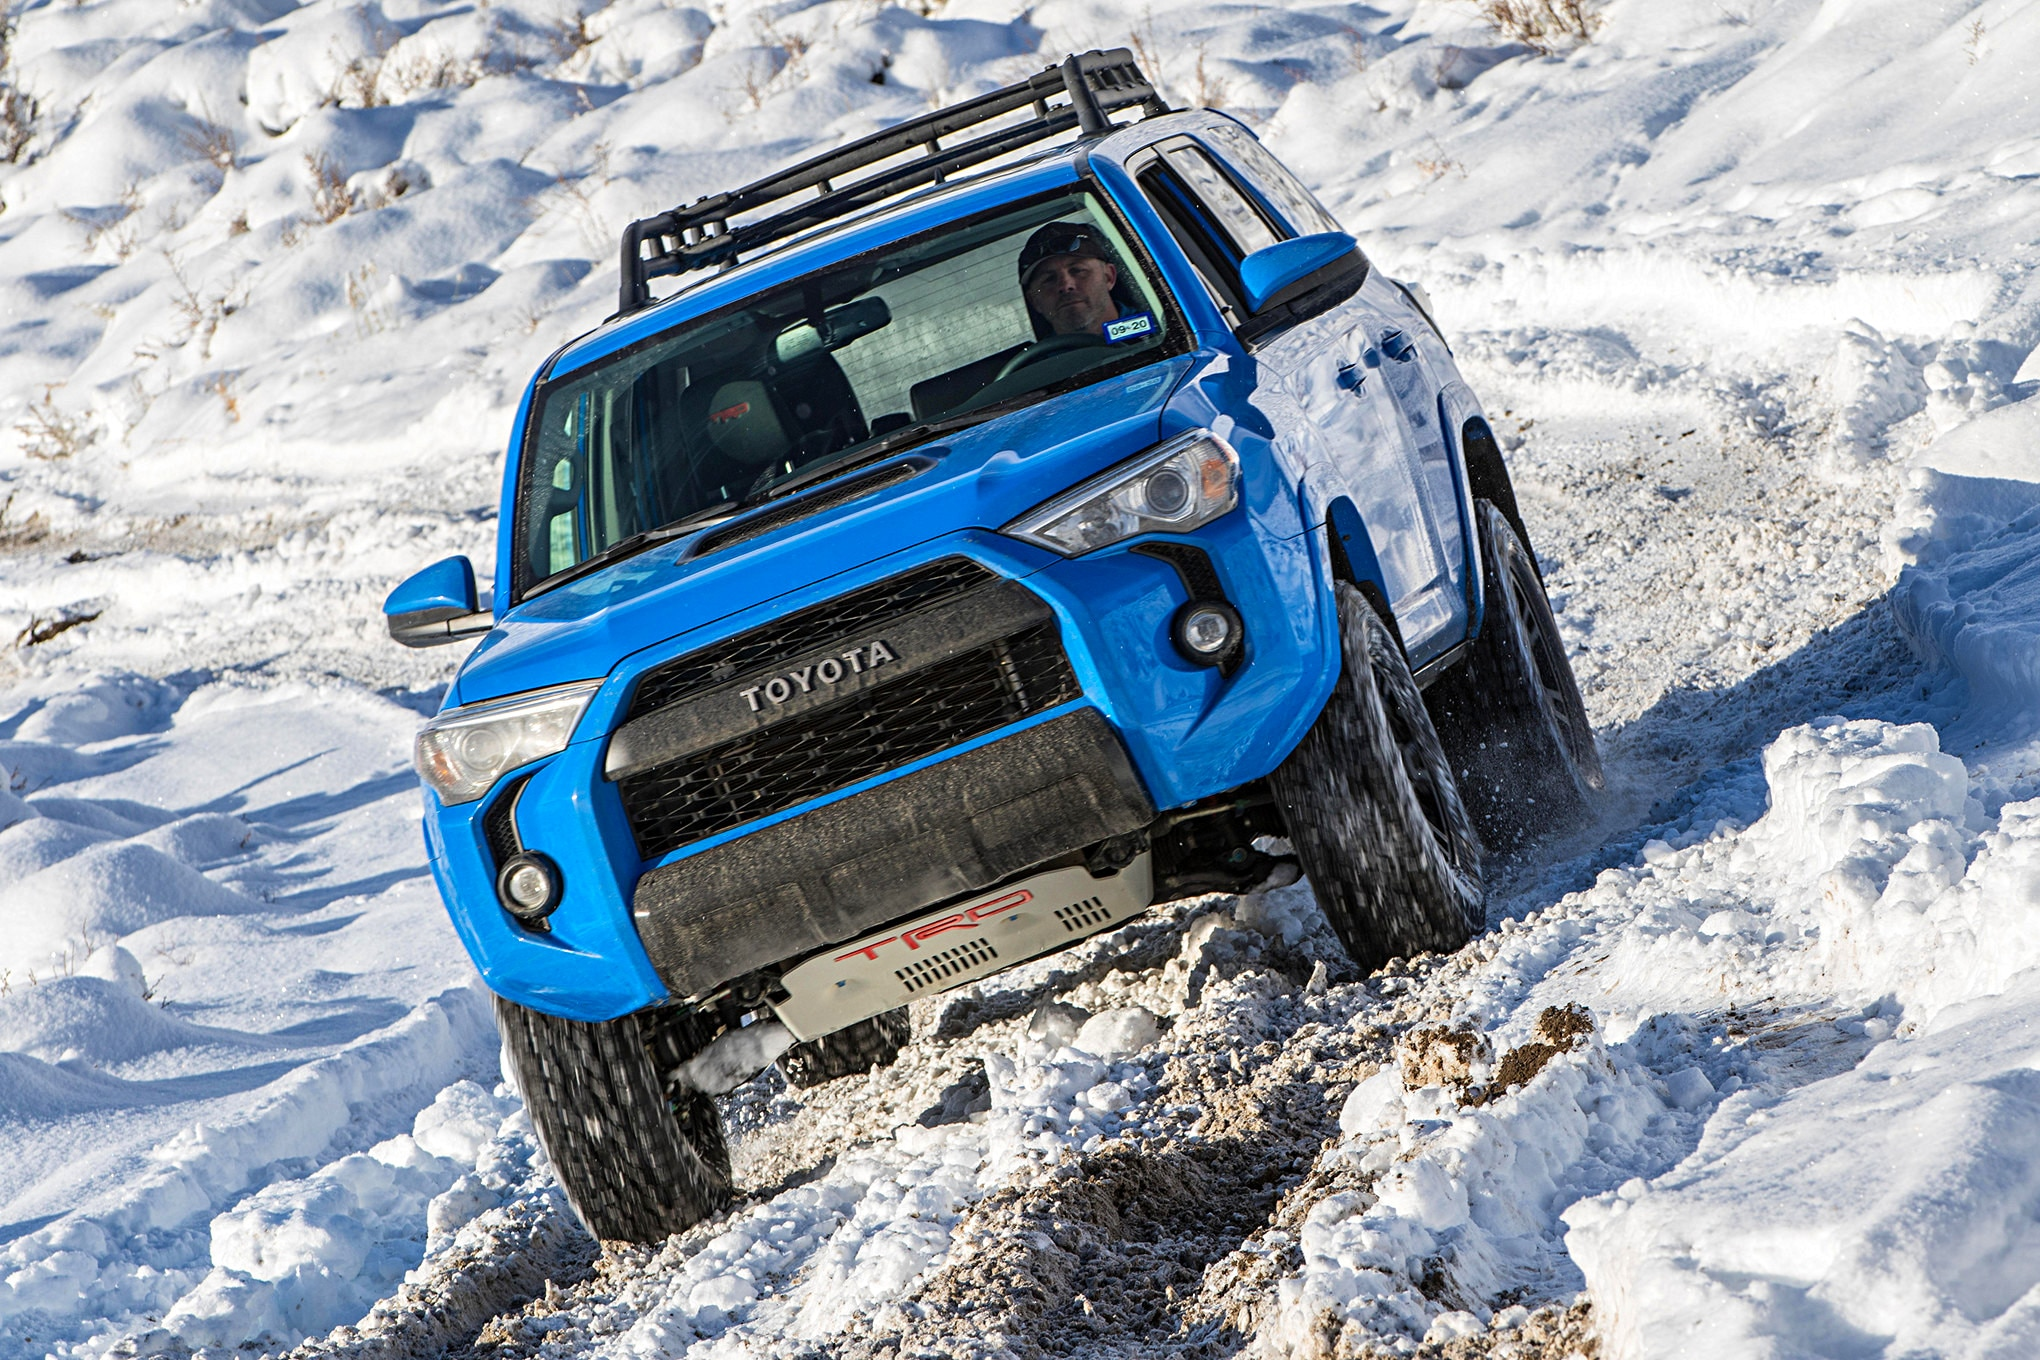 2019 suv of the year toyota 4Runner TRD pro in snow